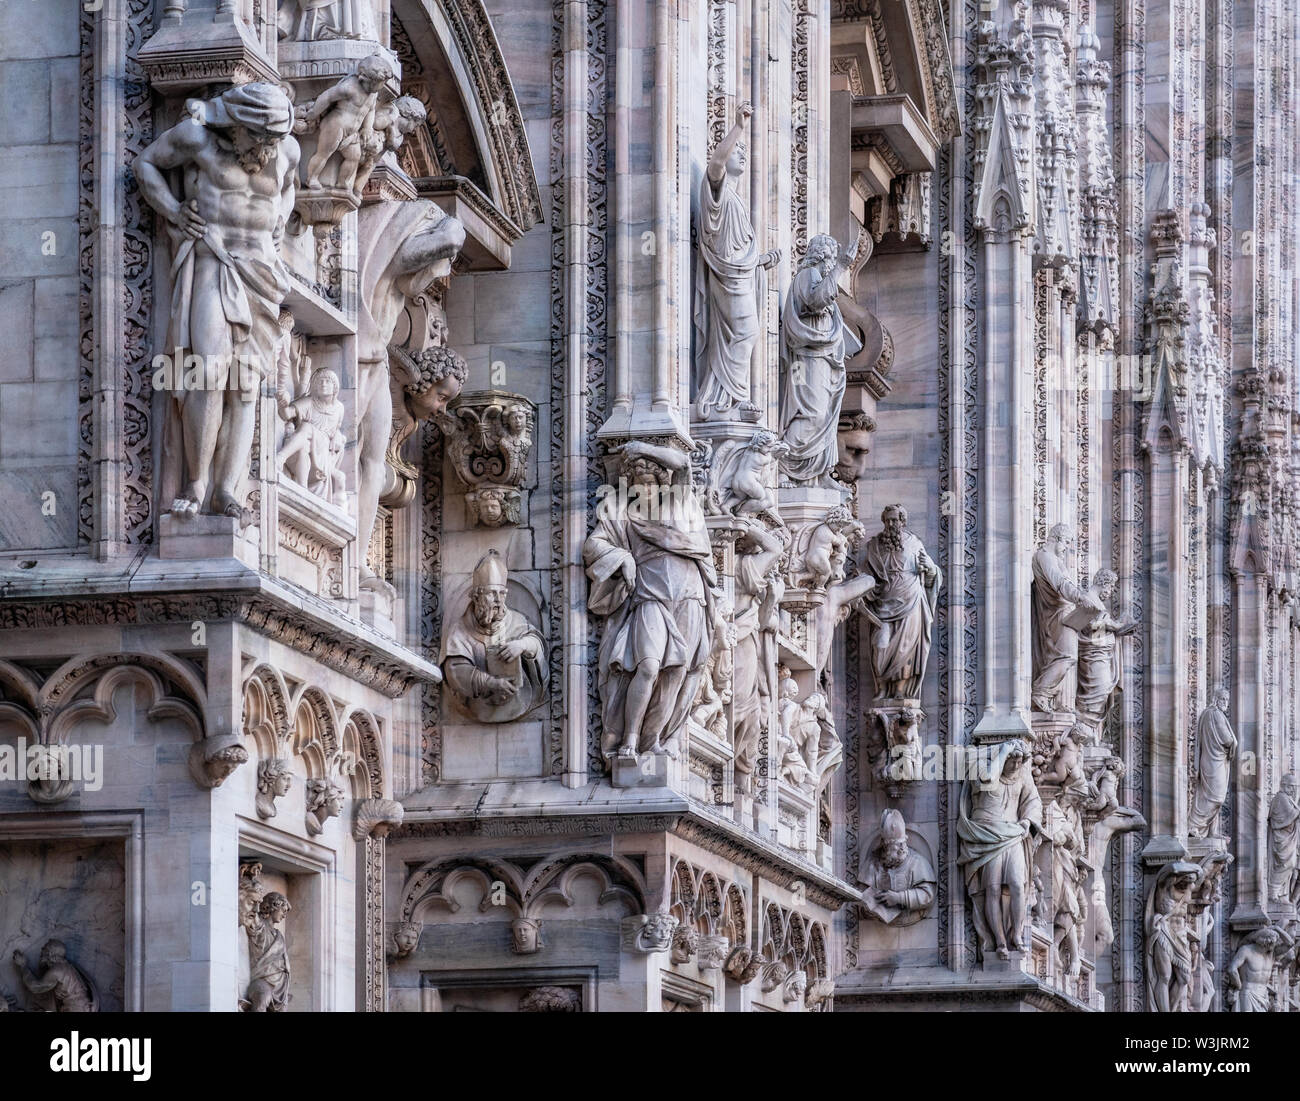 Facade of Duomo Cathedral with details, statues and marble works, Milan, Italy, Stock Photo